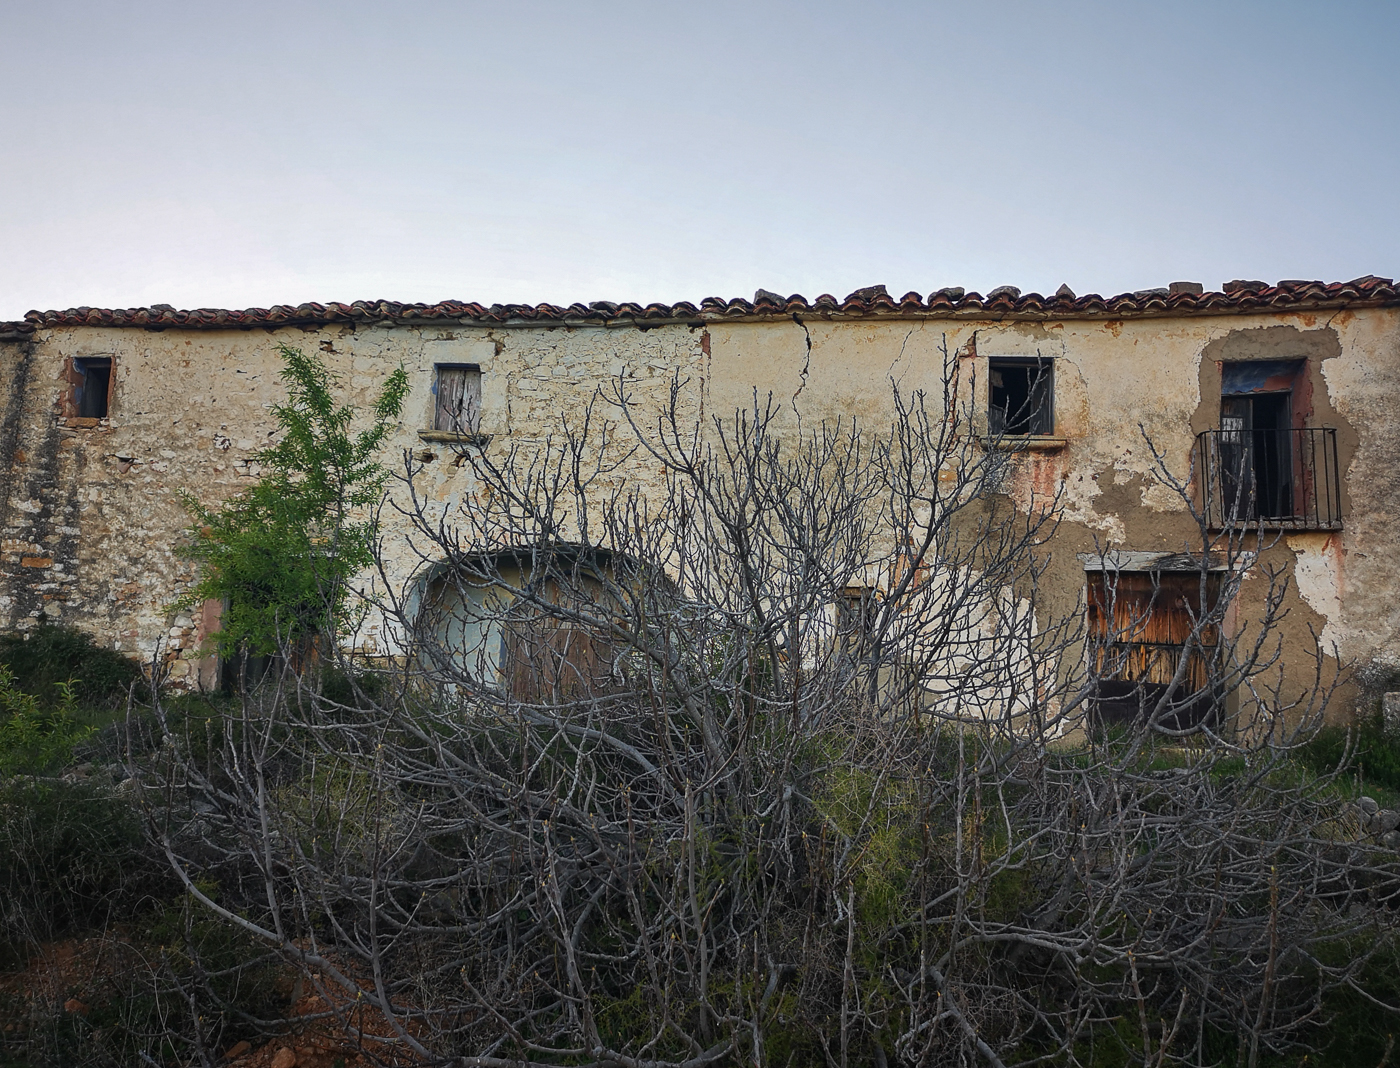 Thee masia was being reclaimed by nature